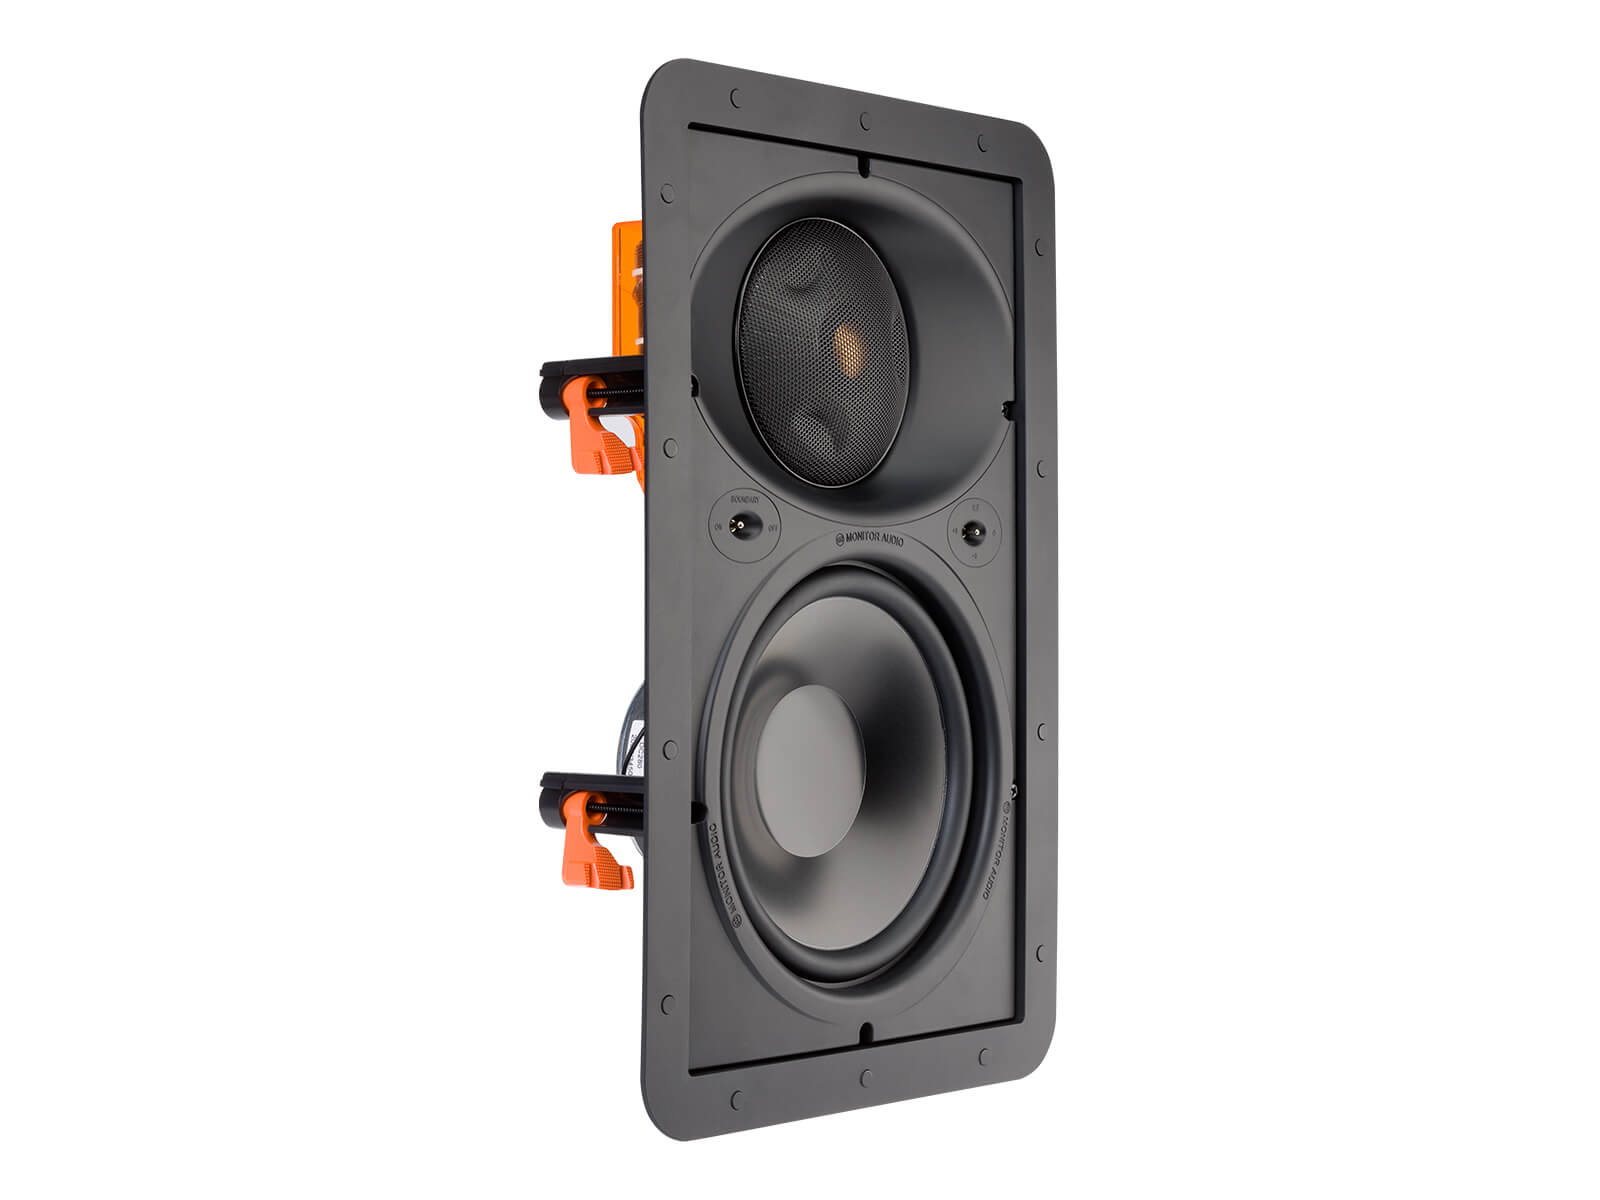 Core W280-IDC, front ISO, grille-less in-wall speakers.